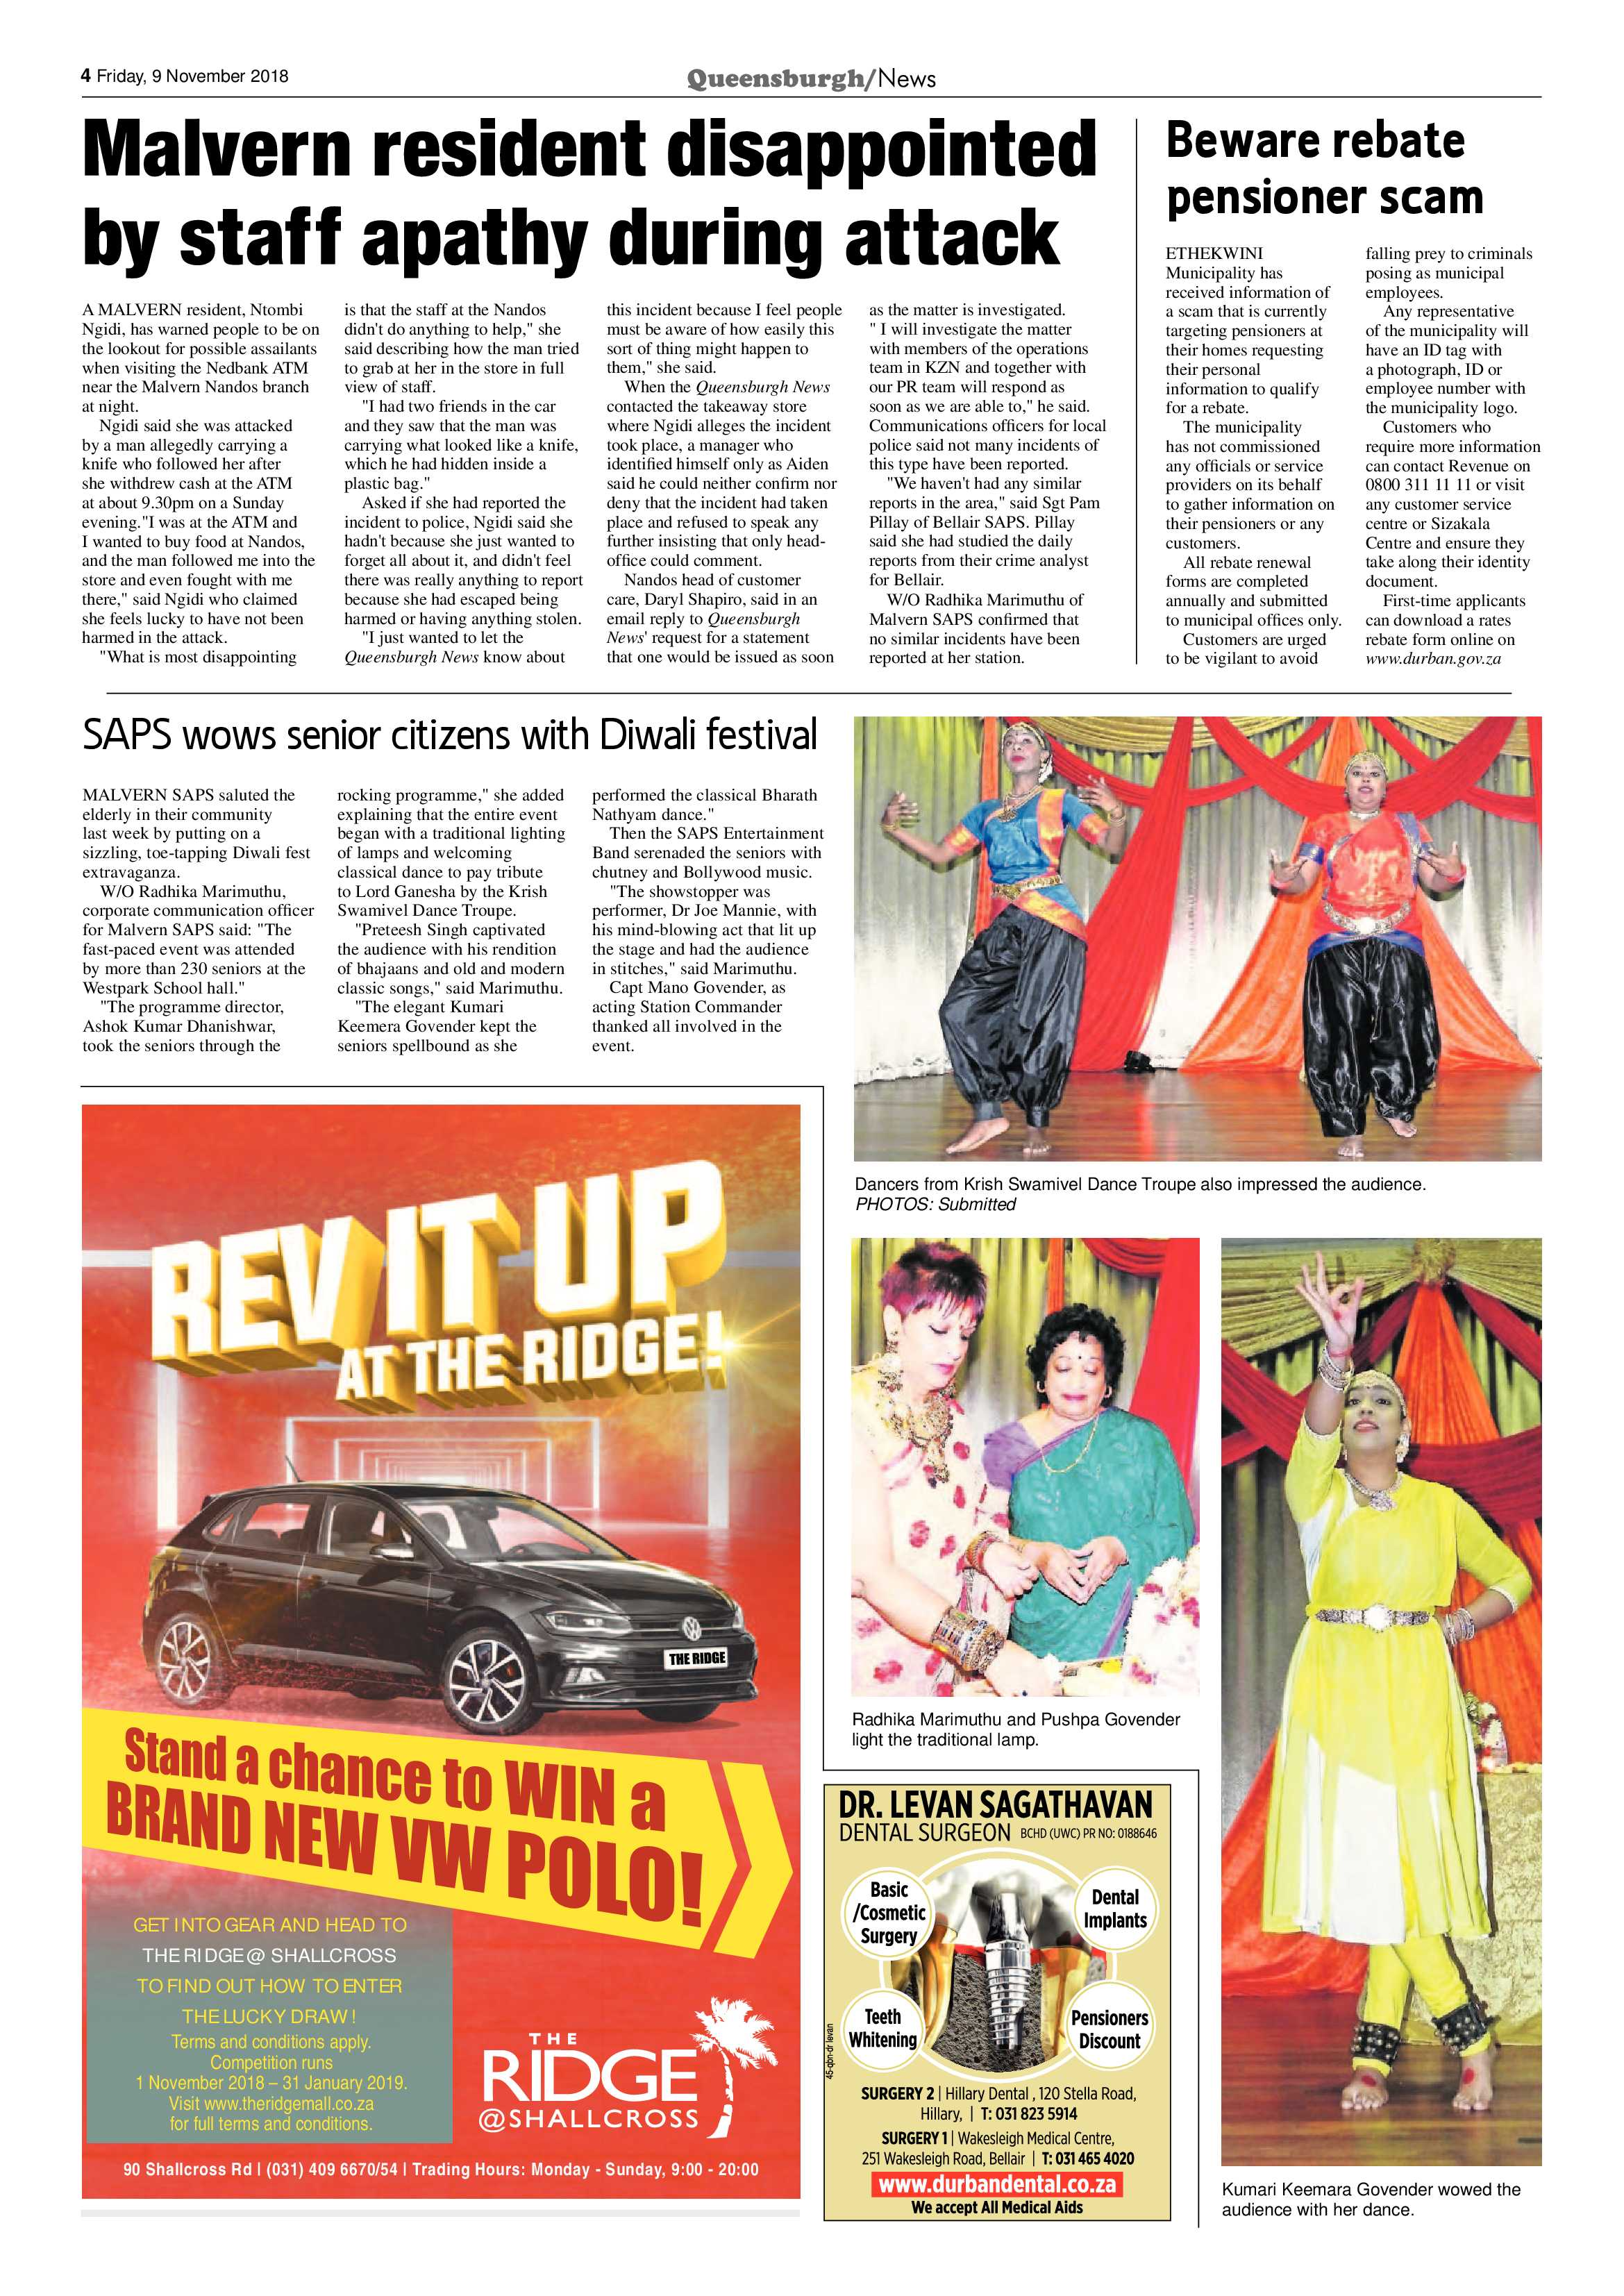 queensburgh-news-9-november-2018-epapers-page-4